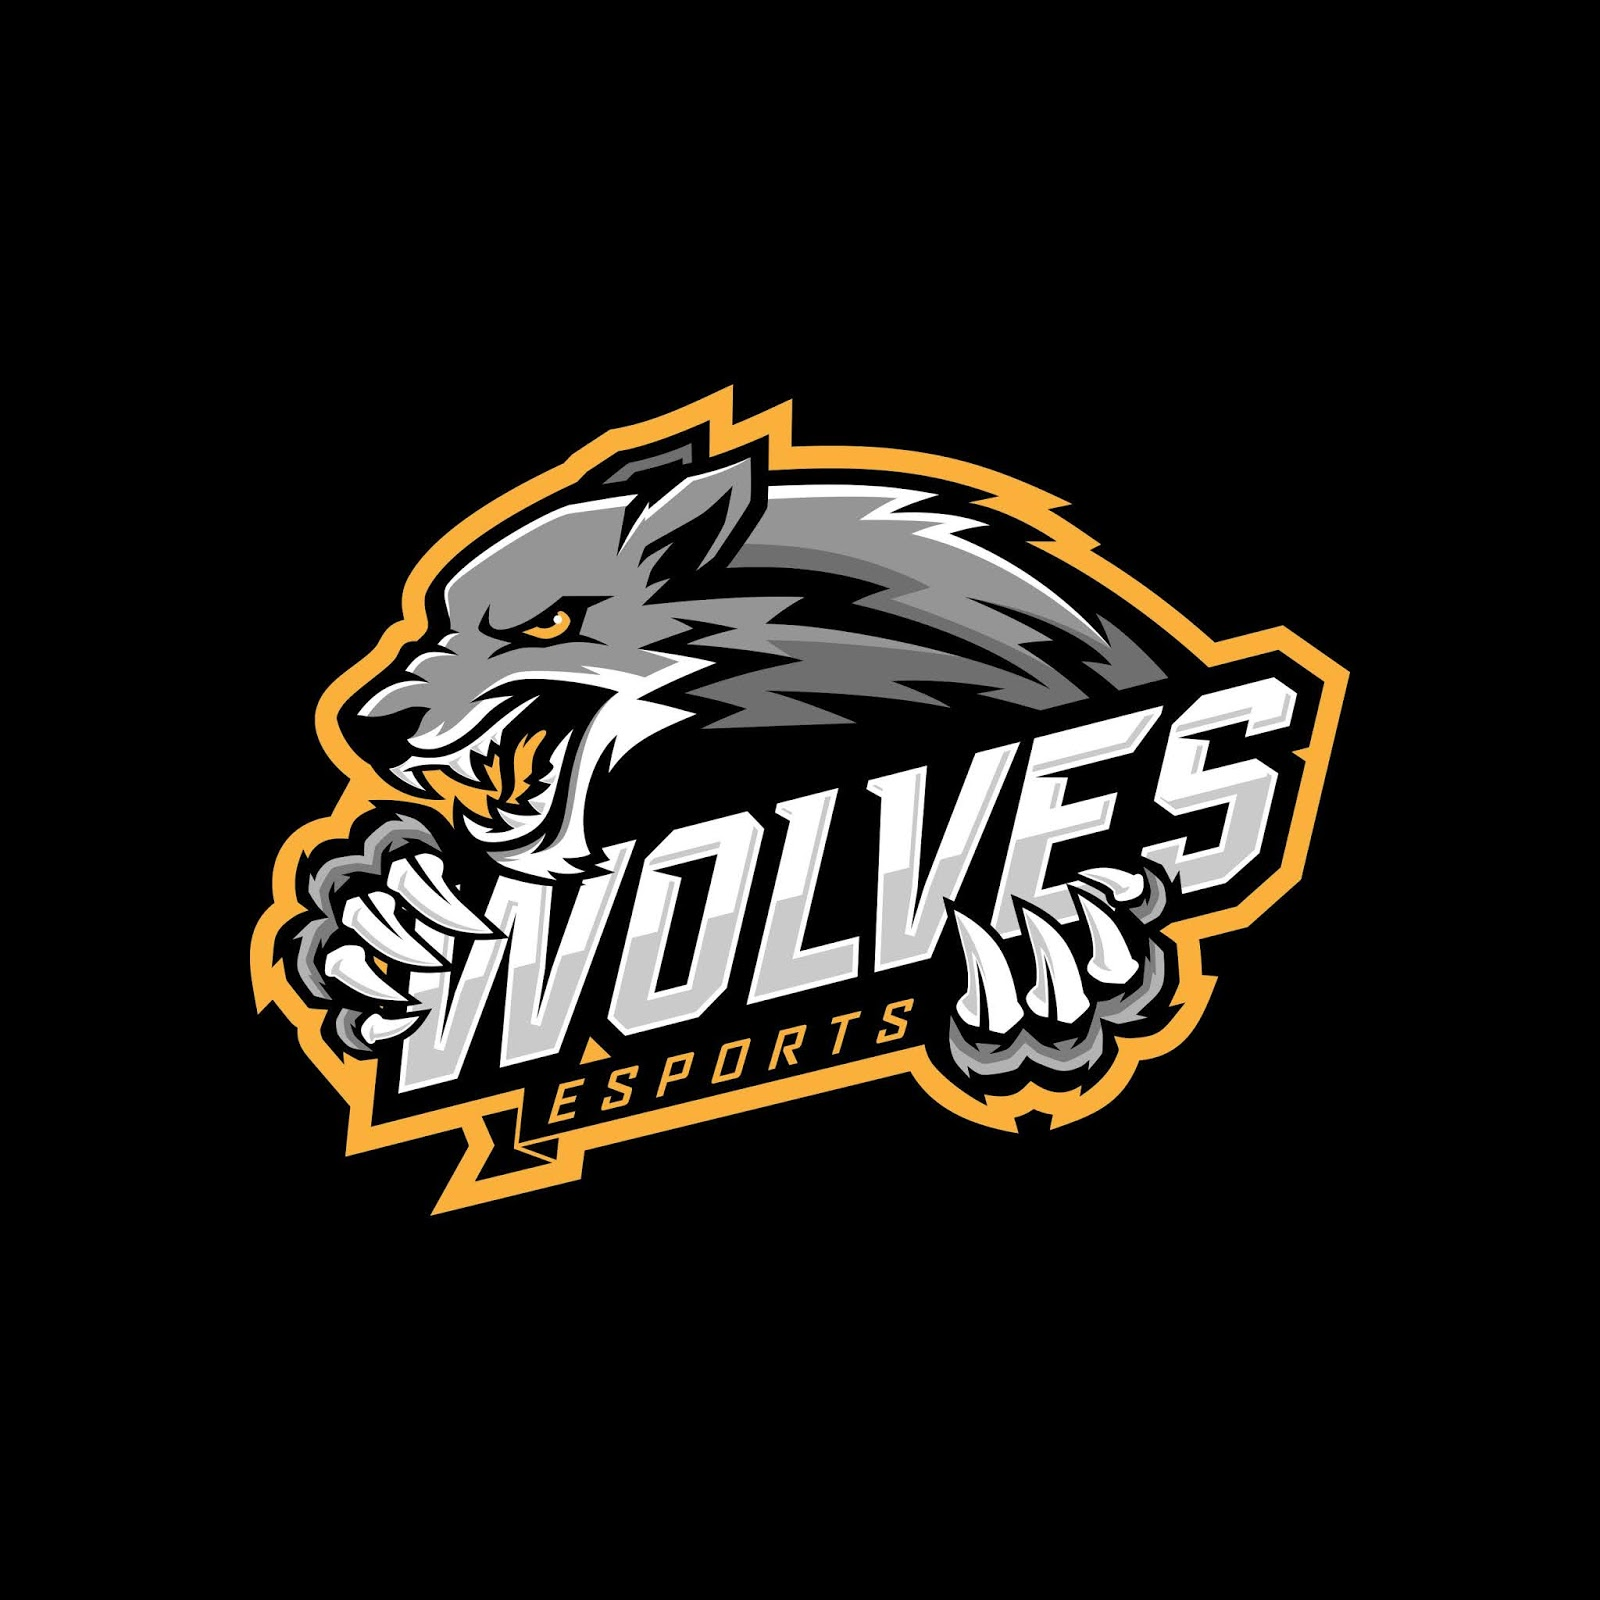 Wolf E Sports Logo Free Download Vector CDR, AI, EPS and PNG Formats